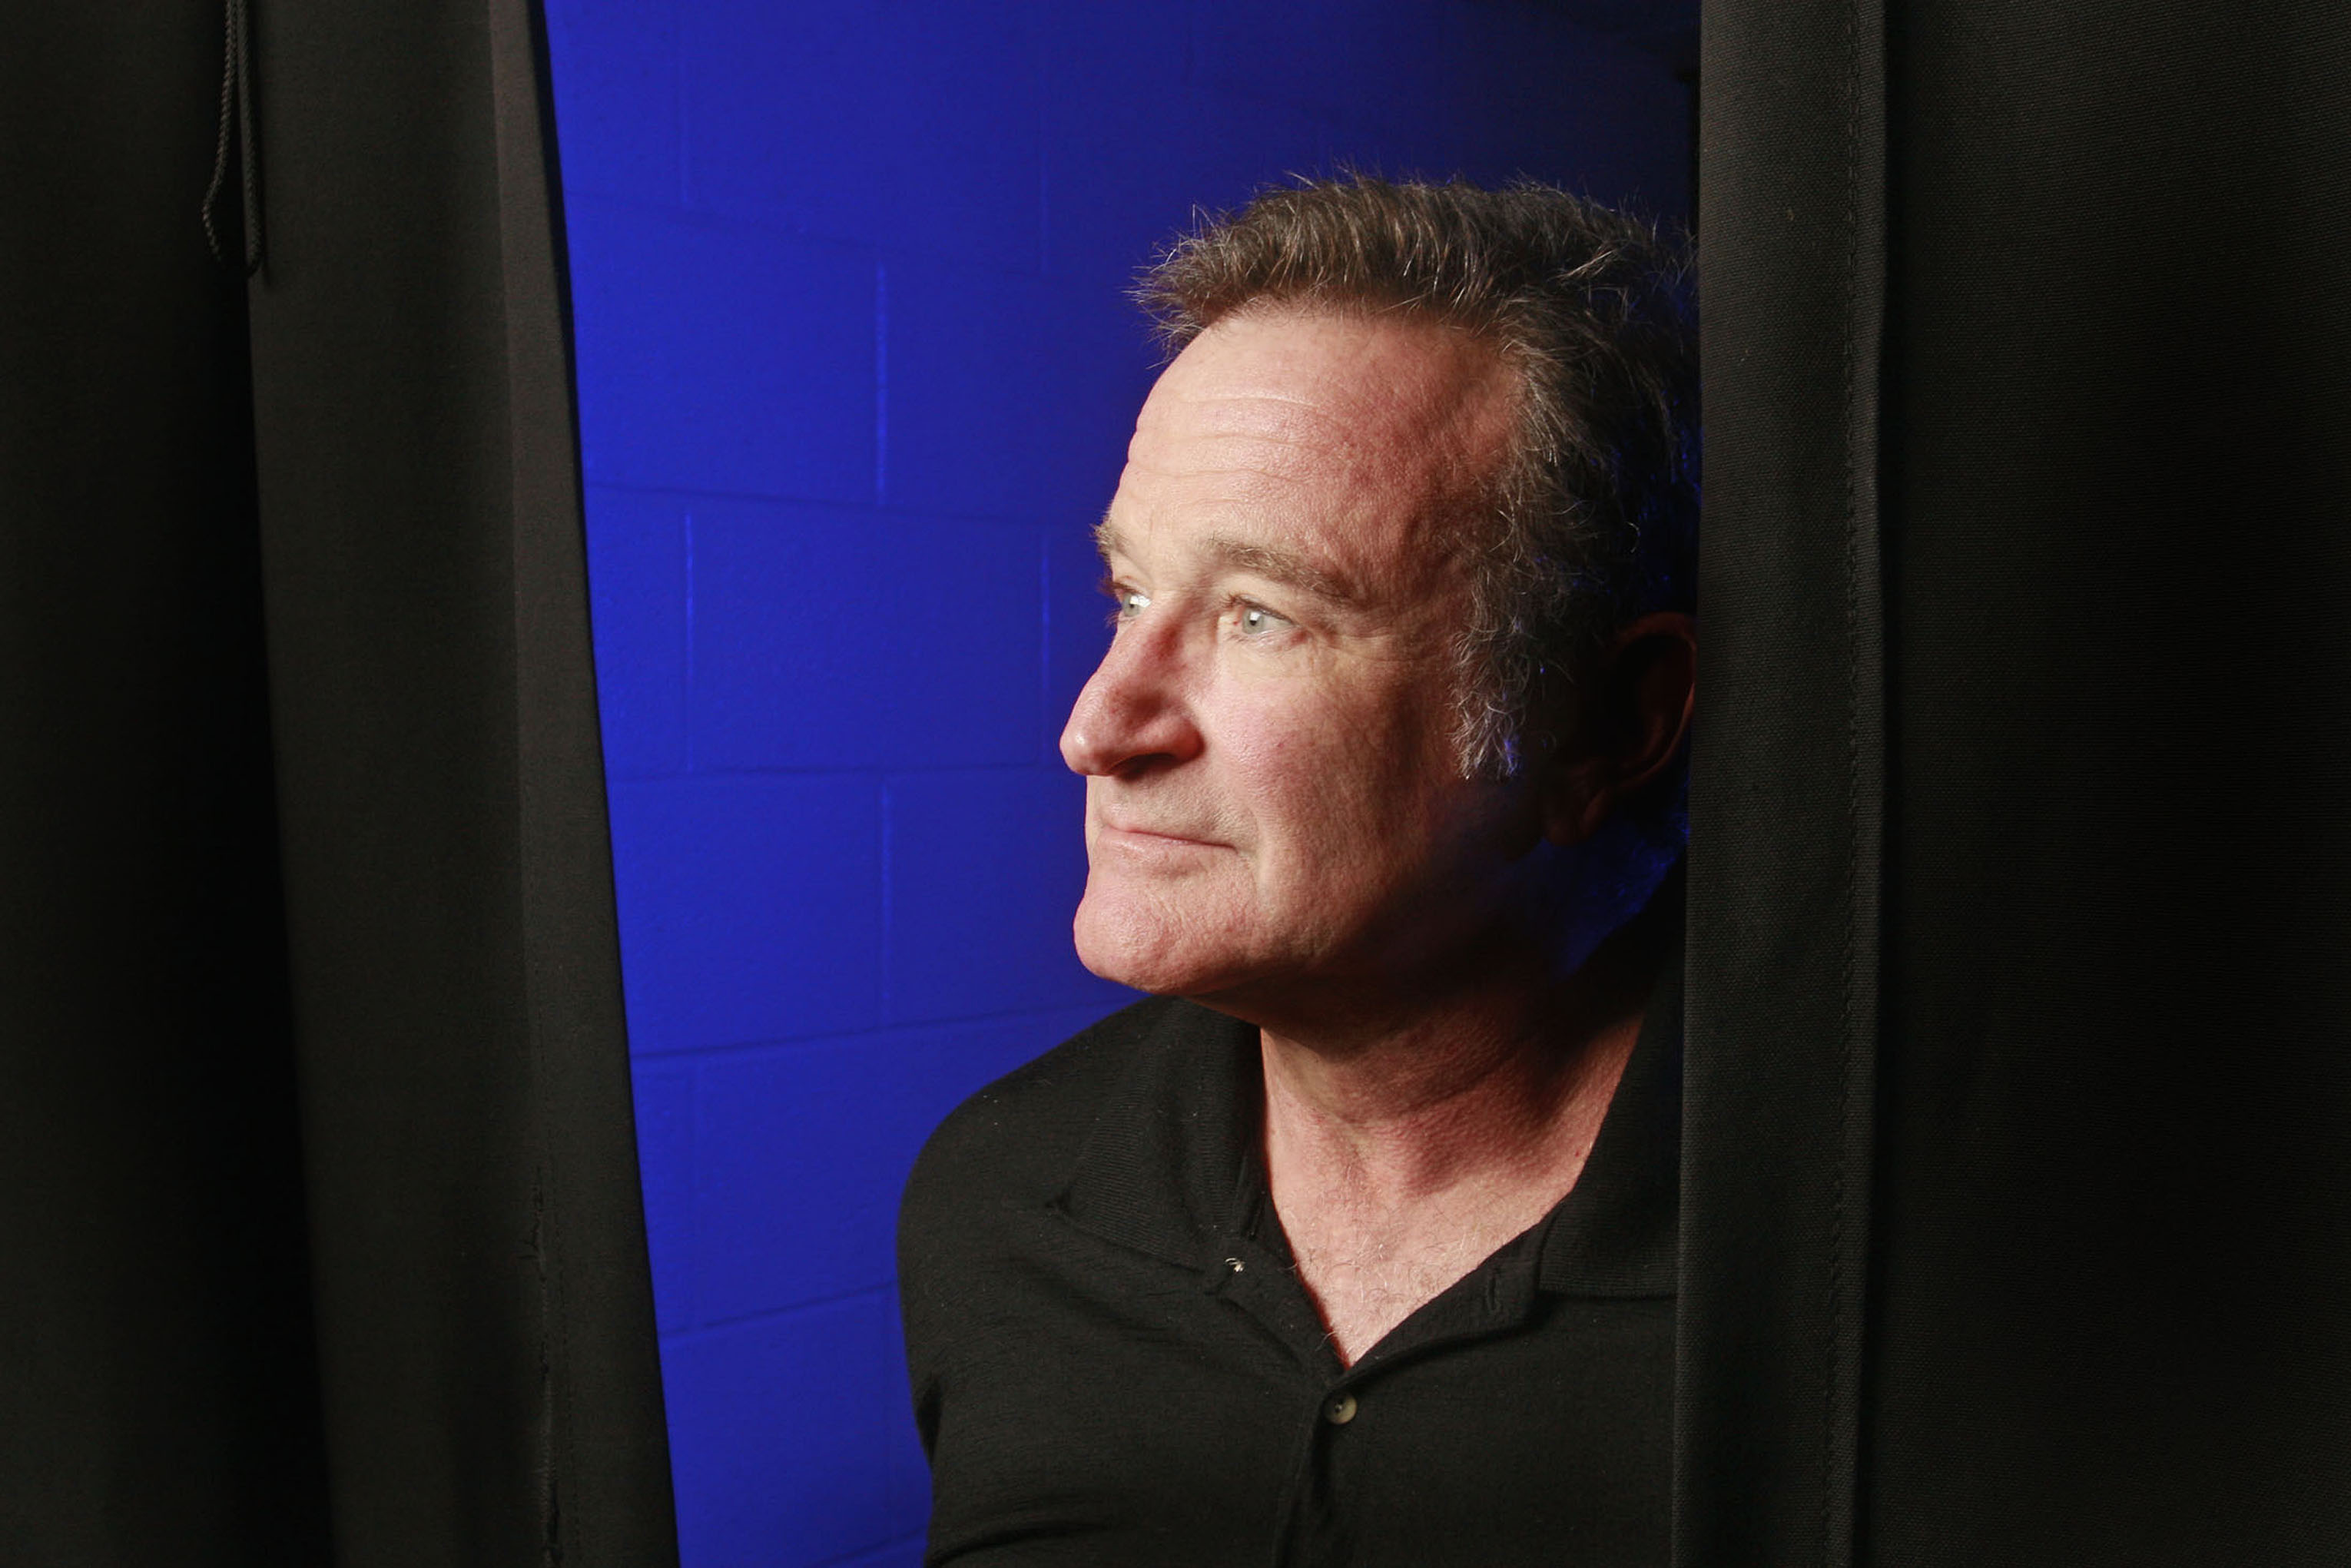 The actor and comedian Robin Williams, who committed suicide on August 11, 2014